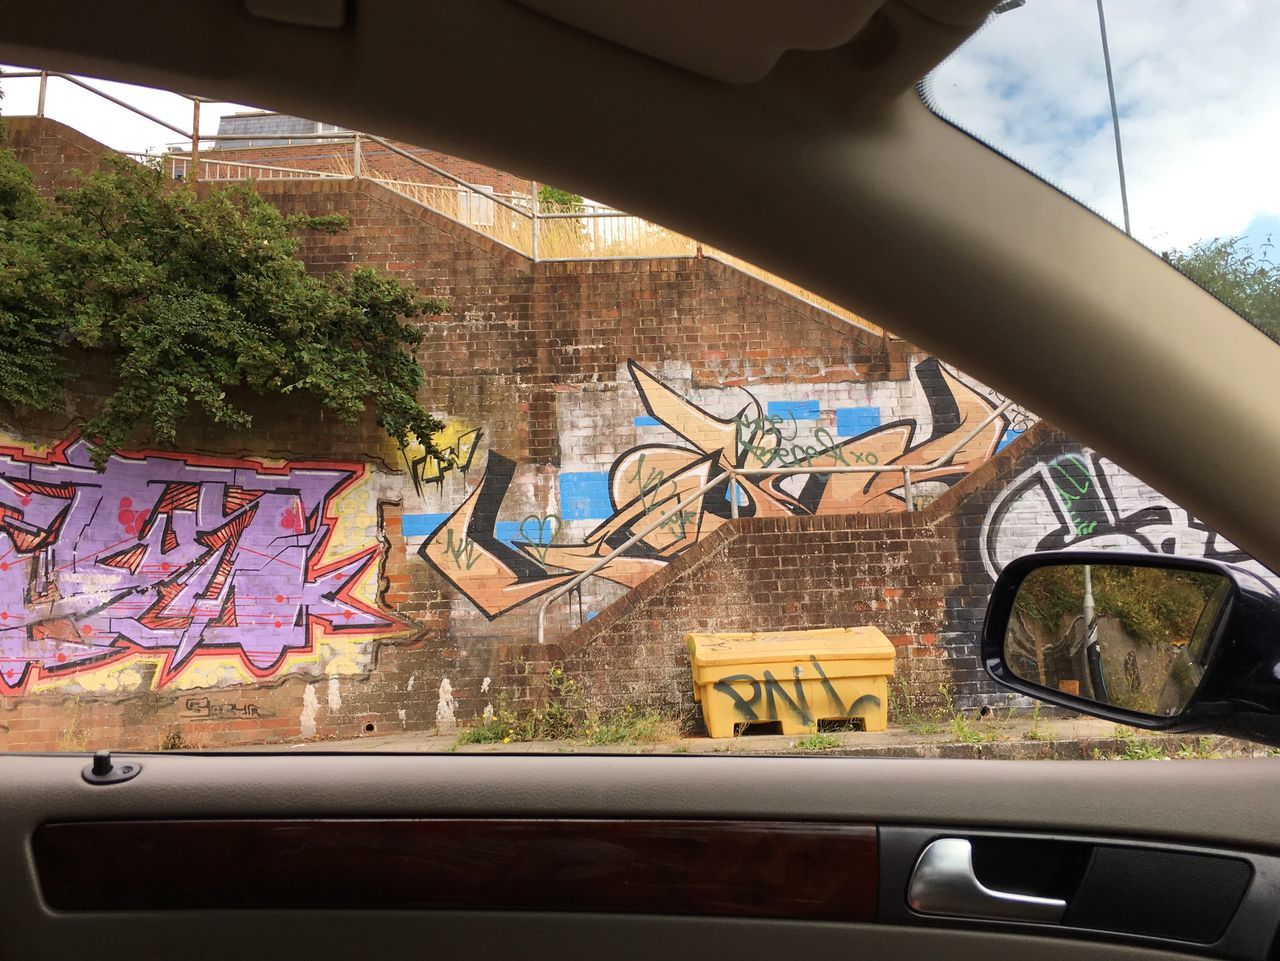 architecture, built structure, car, graffiti, text, land vehicle, transportation, mode of transport, day, building exterior, no people, window, tree, city, outdoors, sky